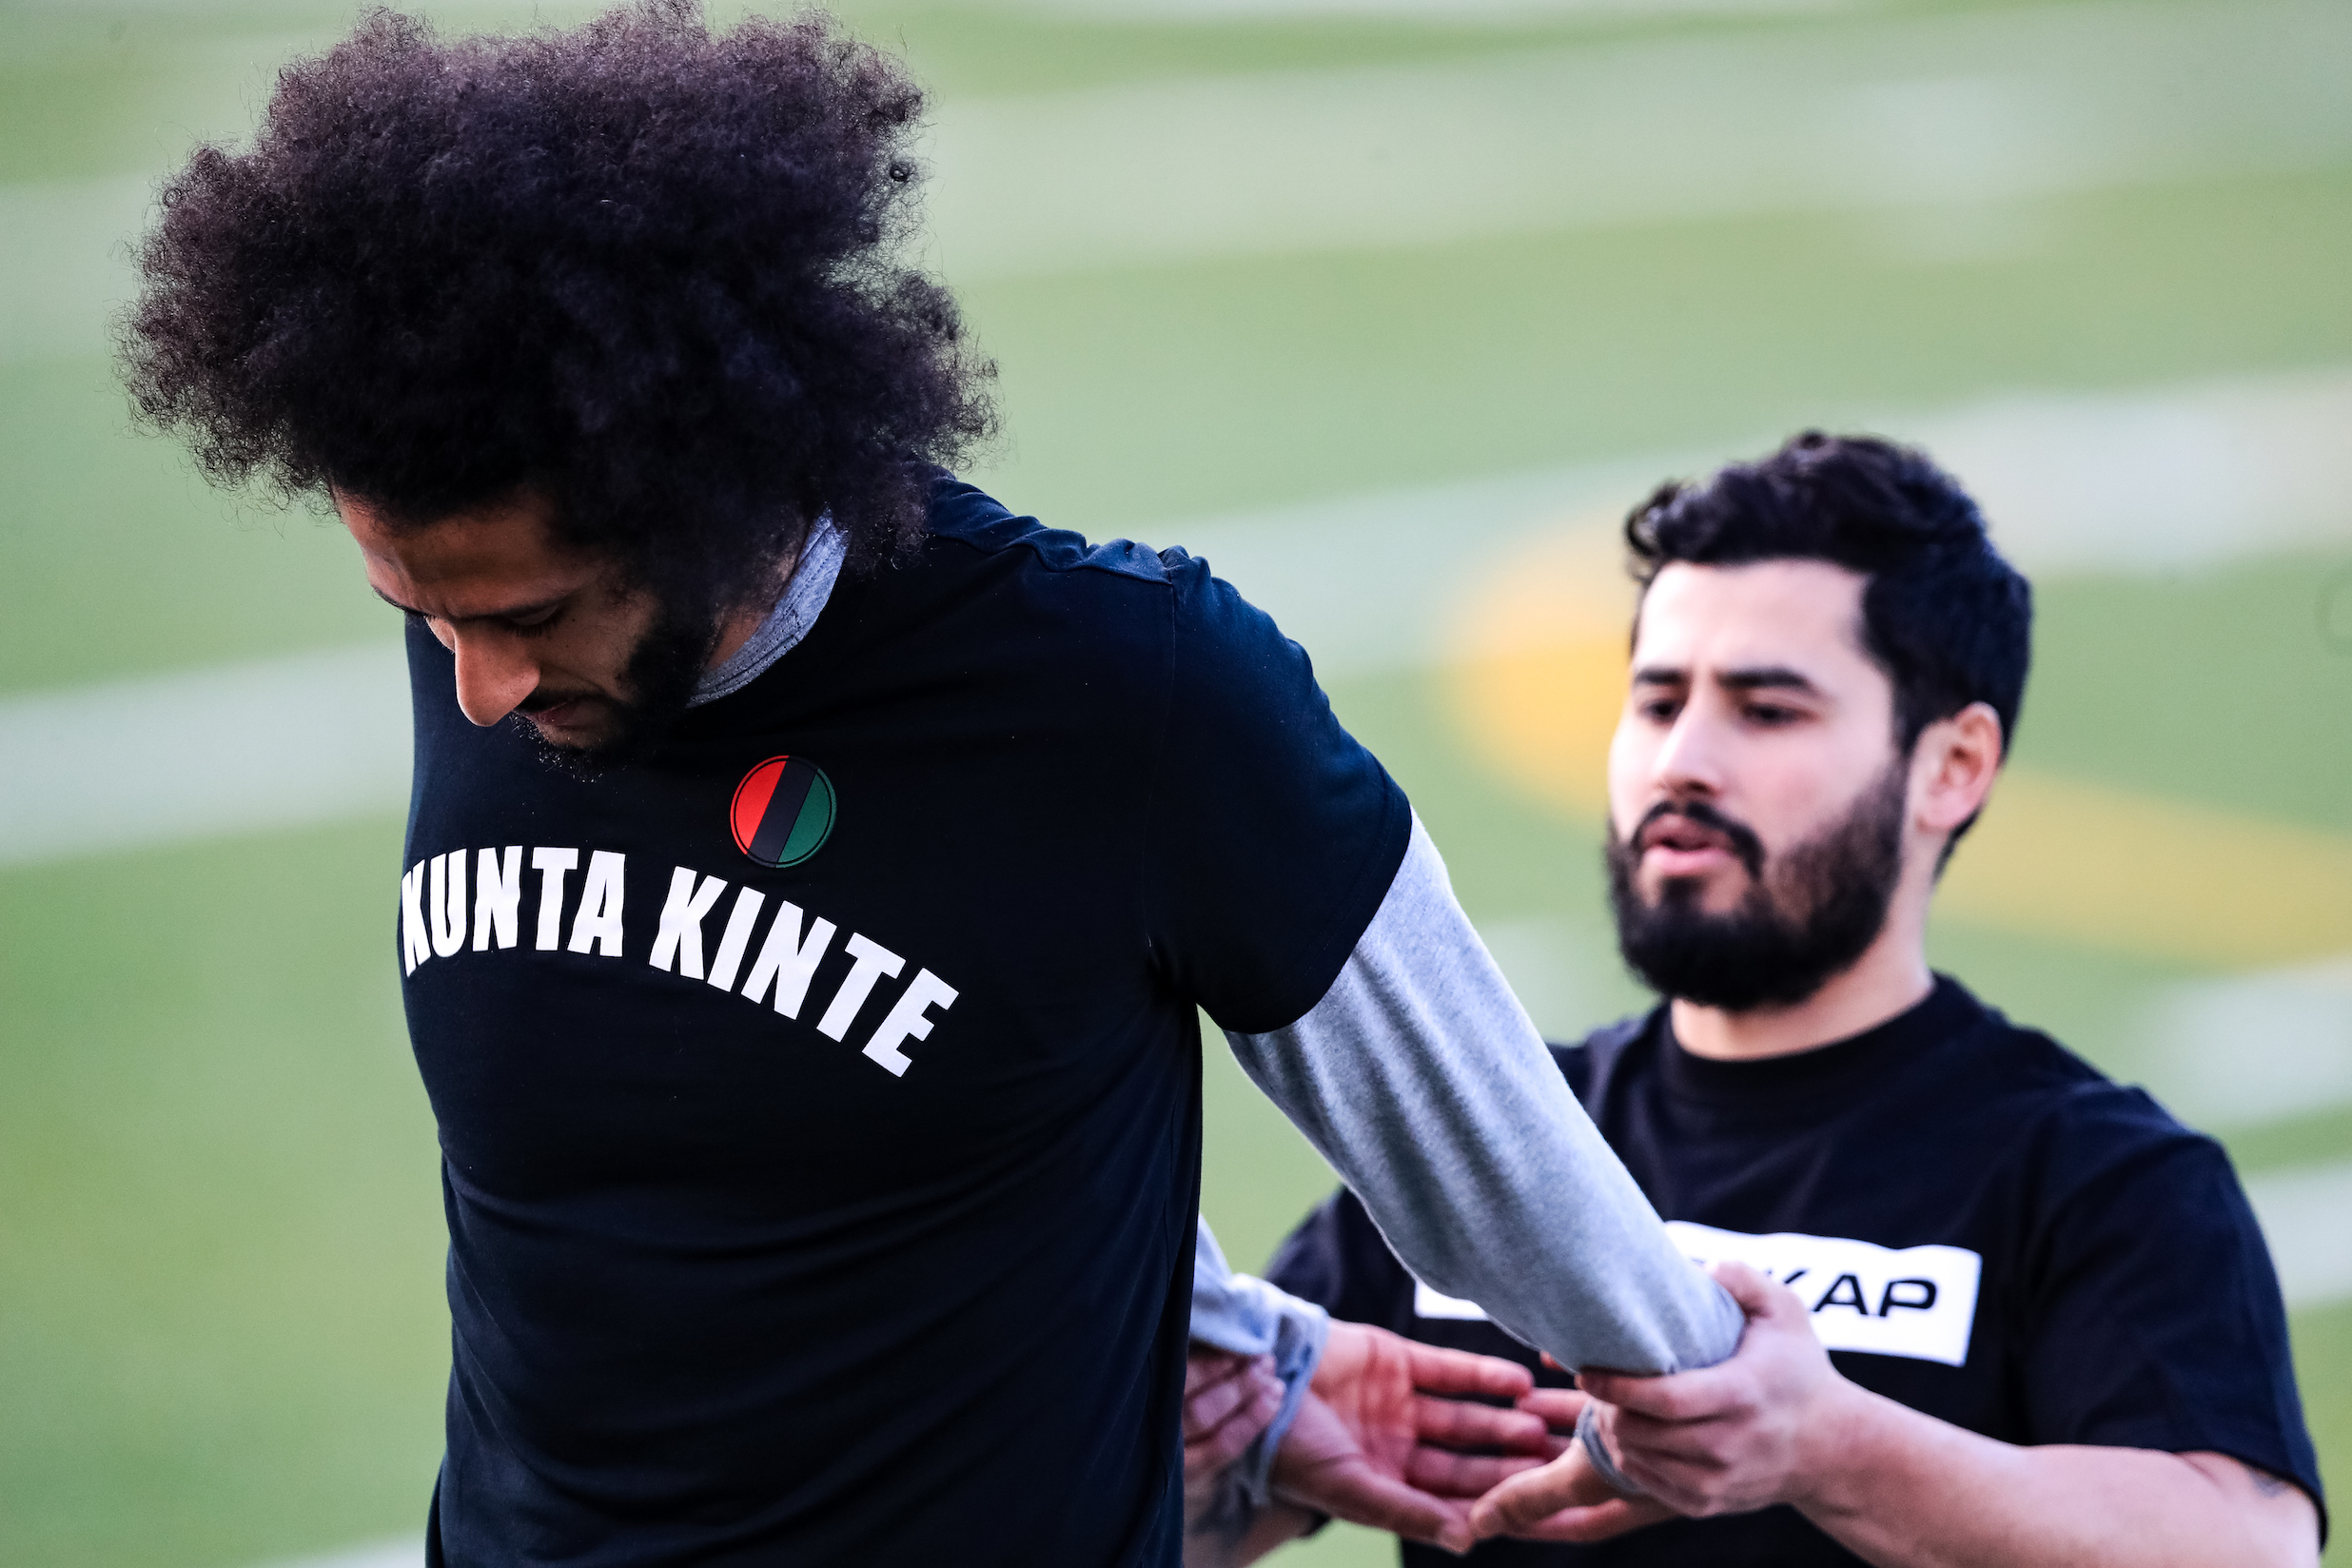 Colin Kaepernick stretches during his NFL workout held at Charles R Drew high school